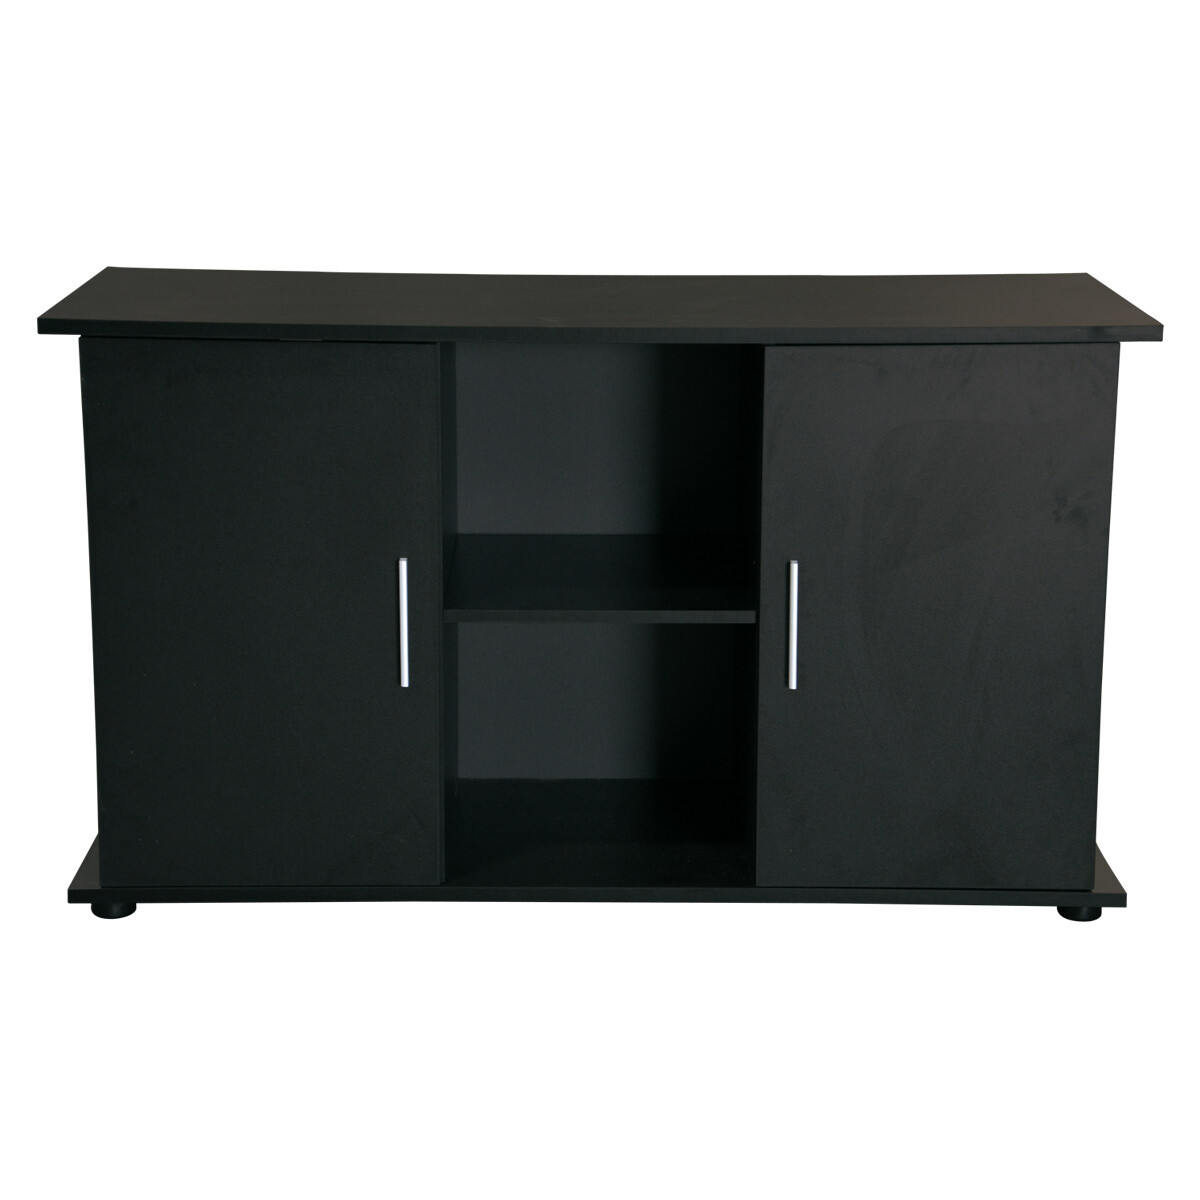 "​Empress Cabinet Stand - Black - 48"" x 18"""